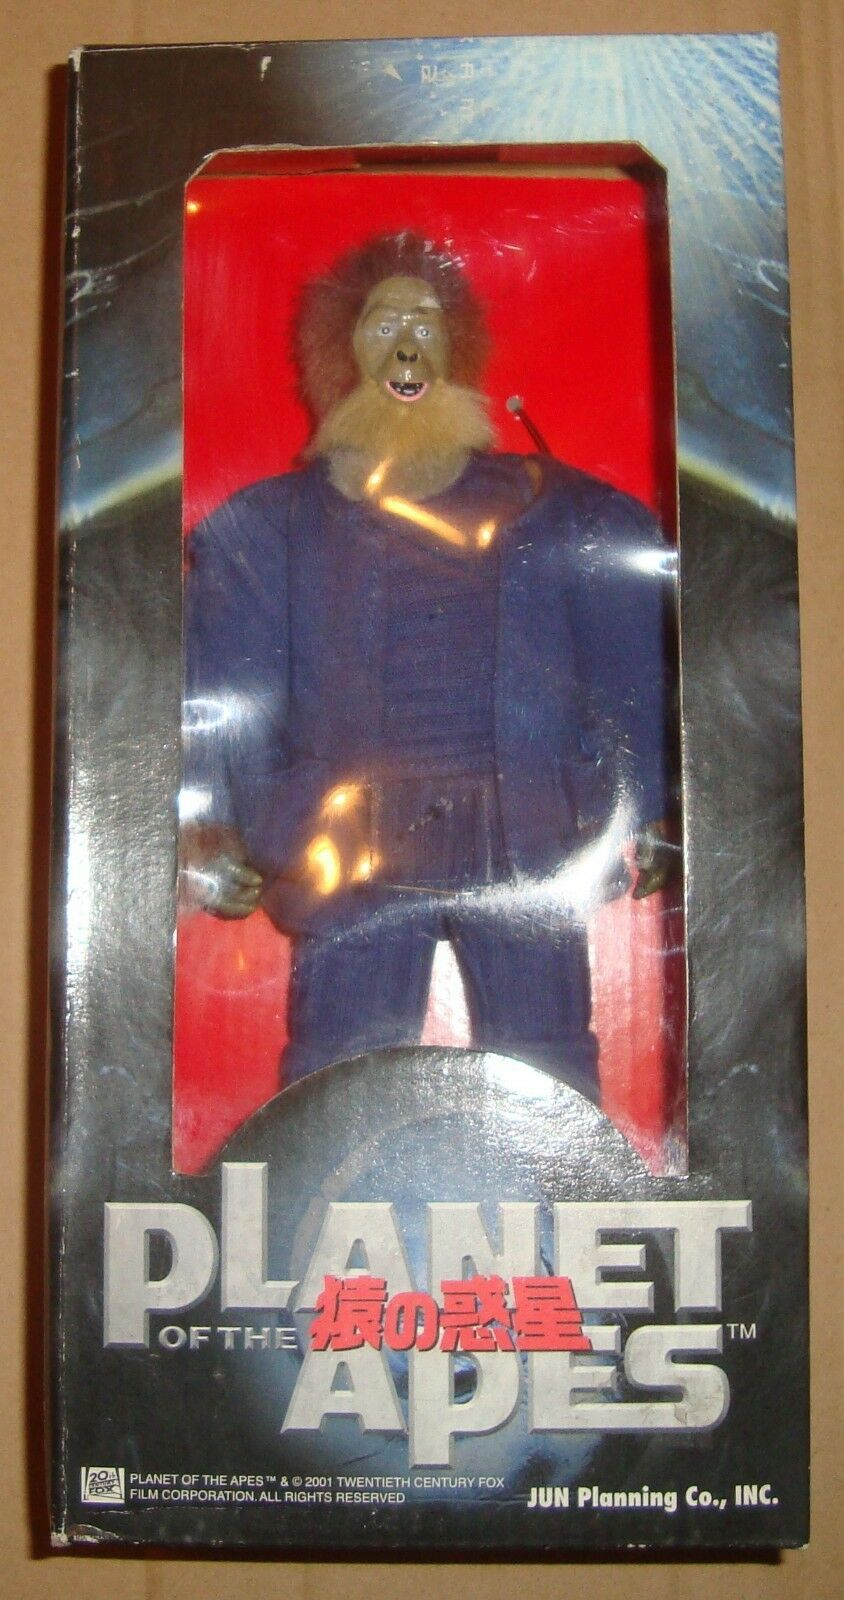 PLANET OF THE APES FIGURE LIMBO JUN PLANNING CO. 2001